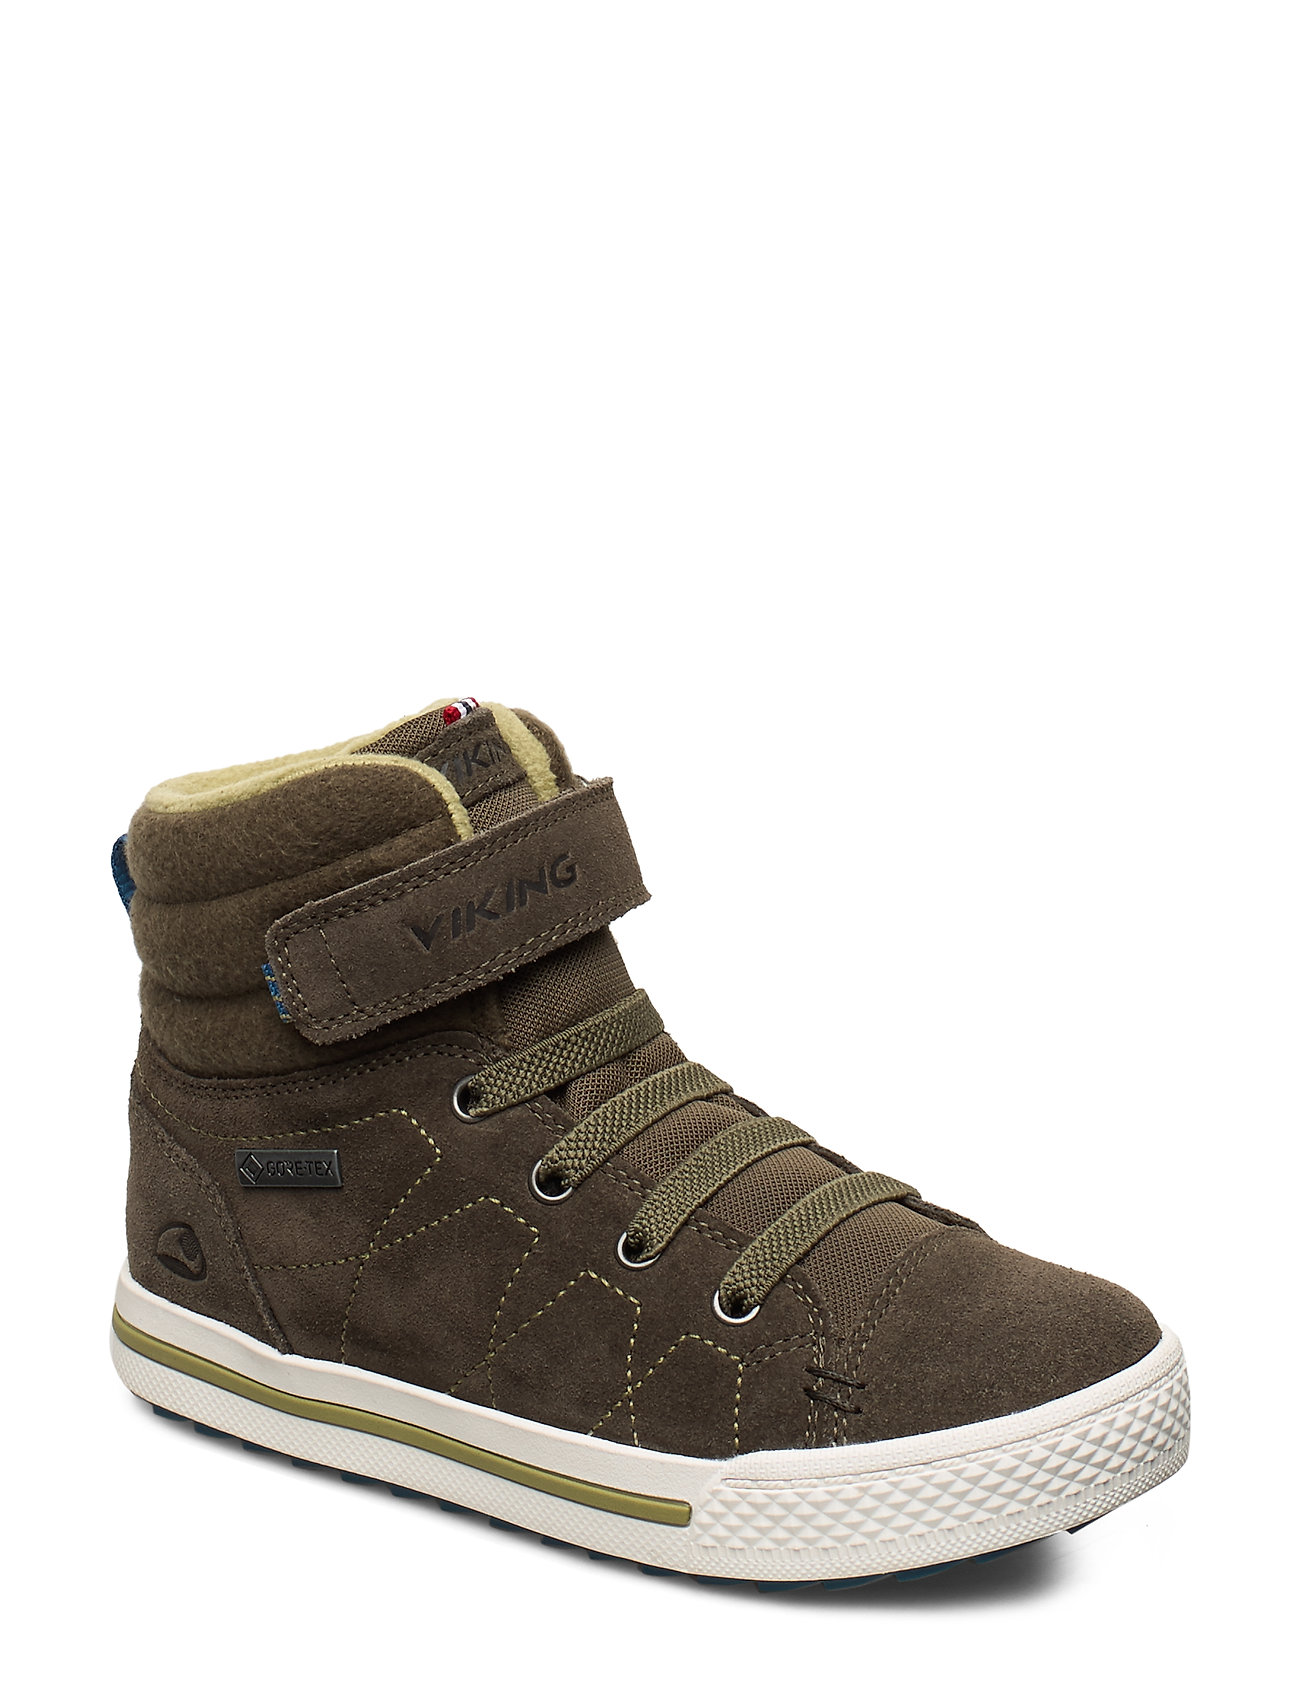 Viking Eagle IV GTX - OLIVE